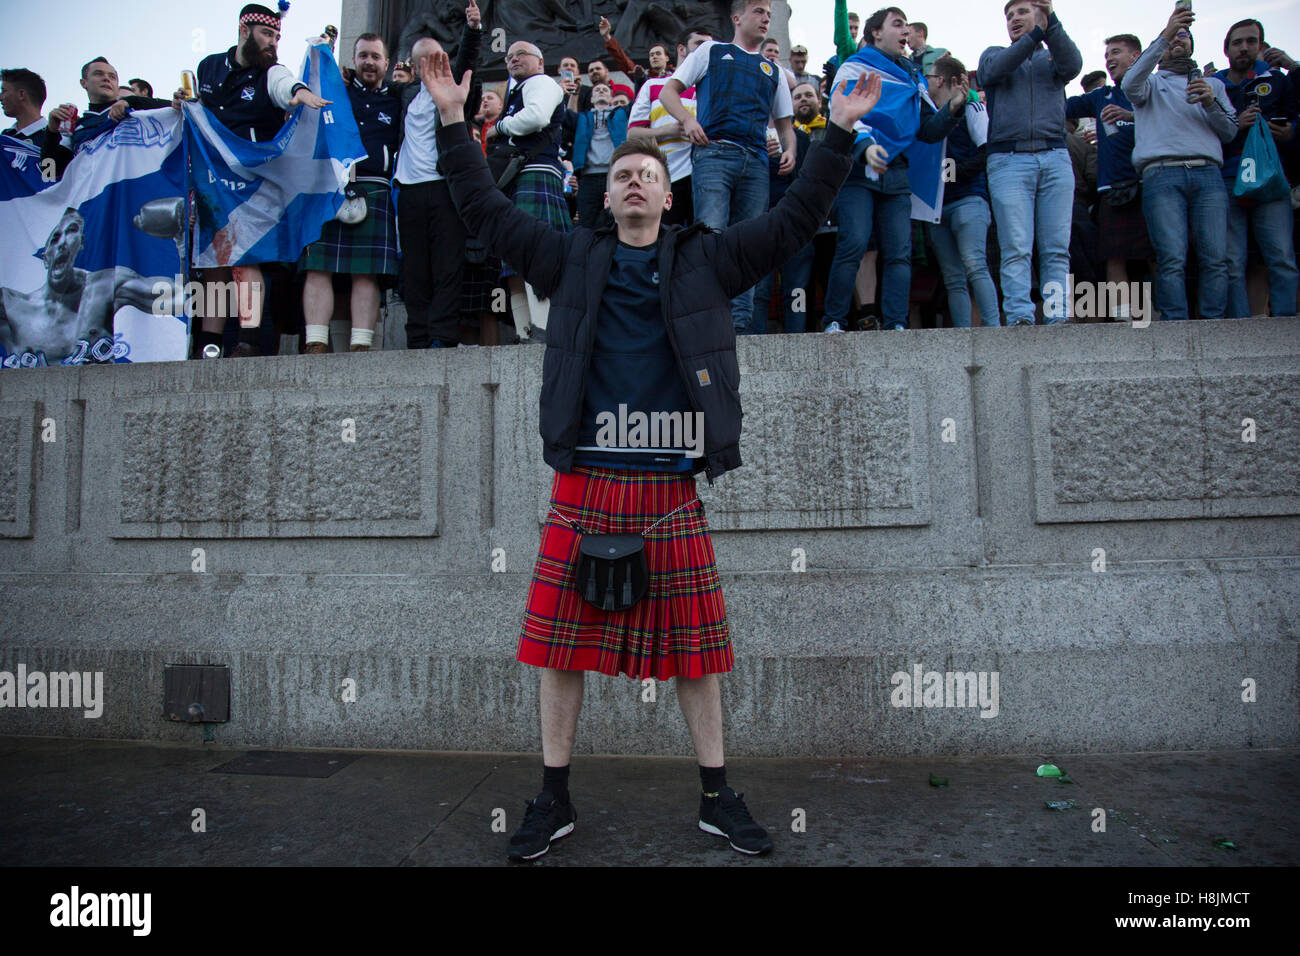 scotland fans wearing kilts in joyous mood drinking and singing